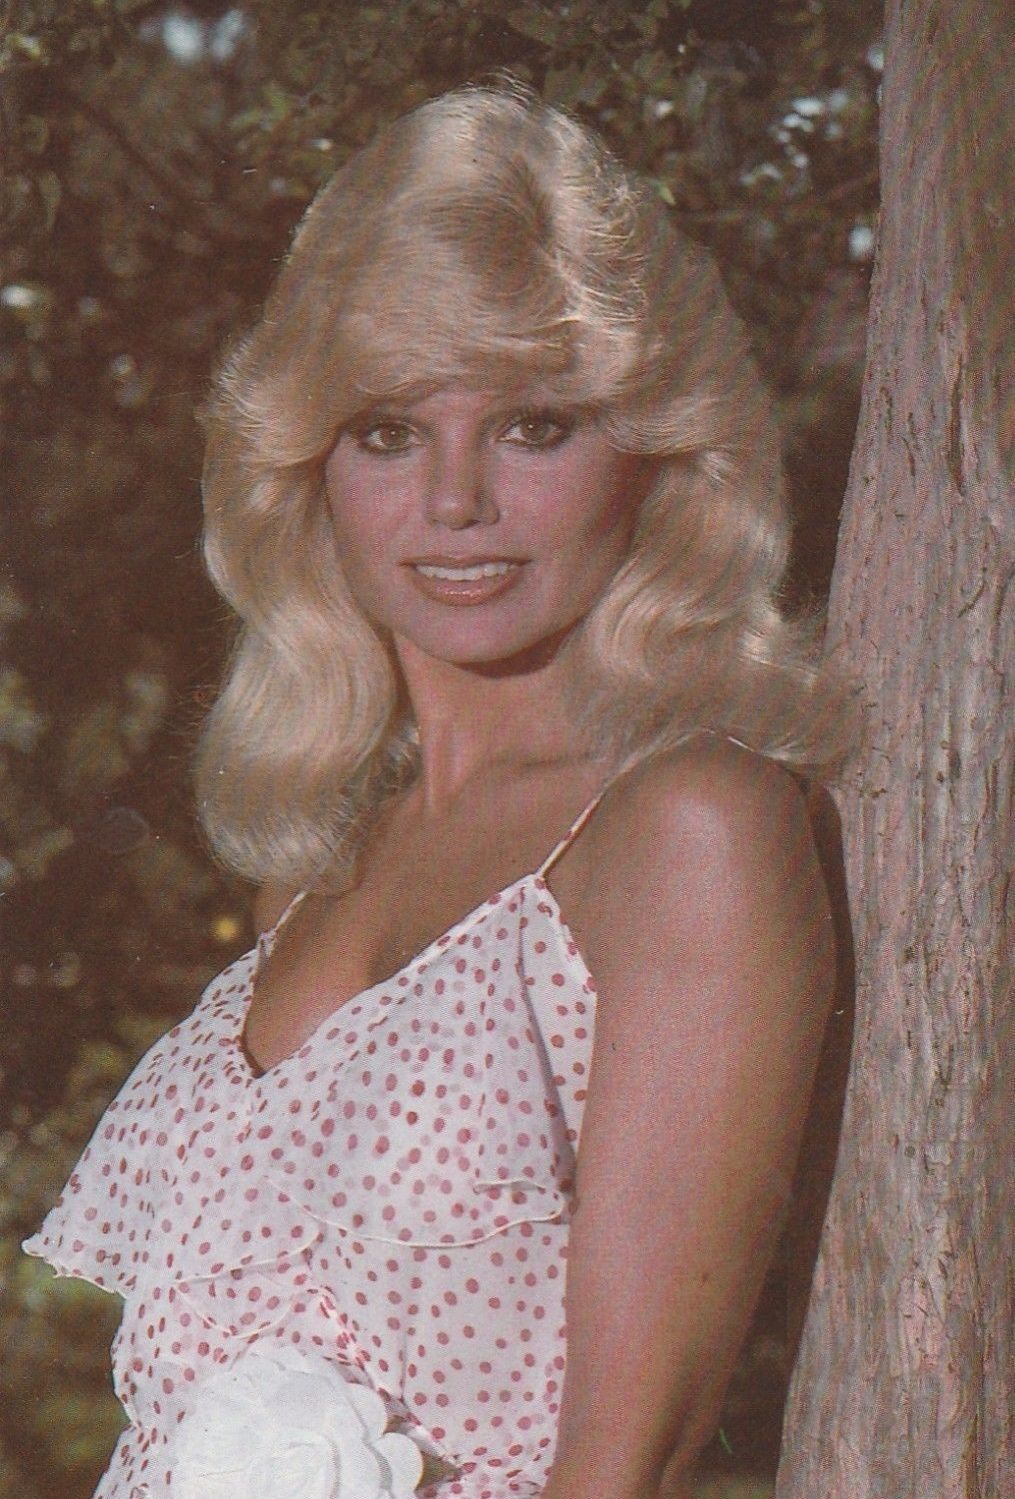 Loni Anderson born August 5, 1946 (age 72) Loni Anderson born August 5, 1946 (age 72) new images